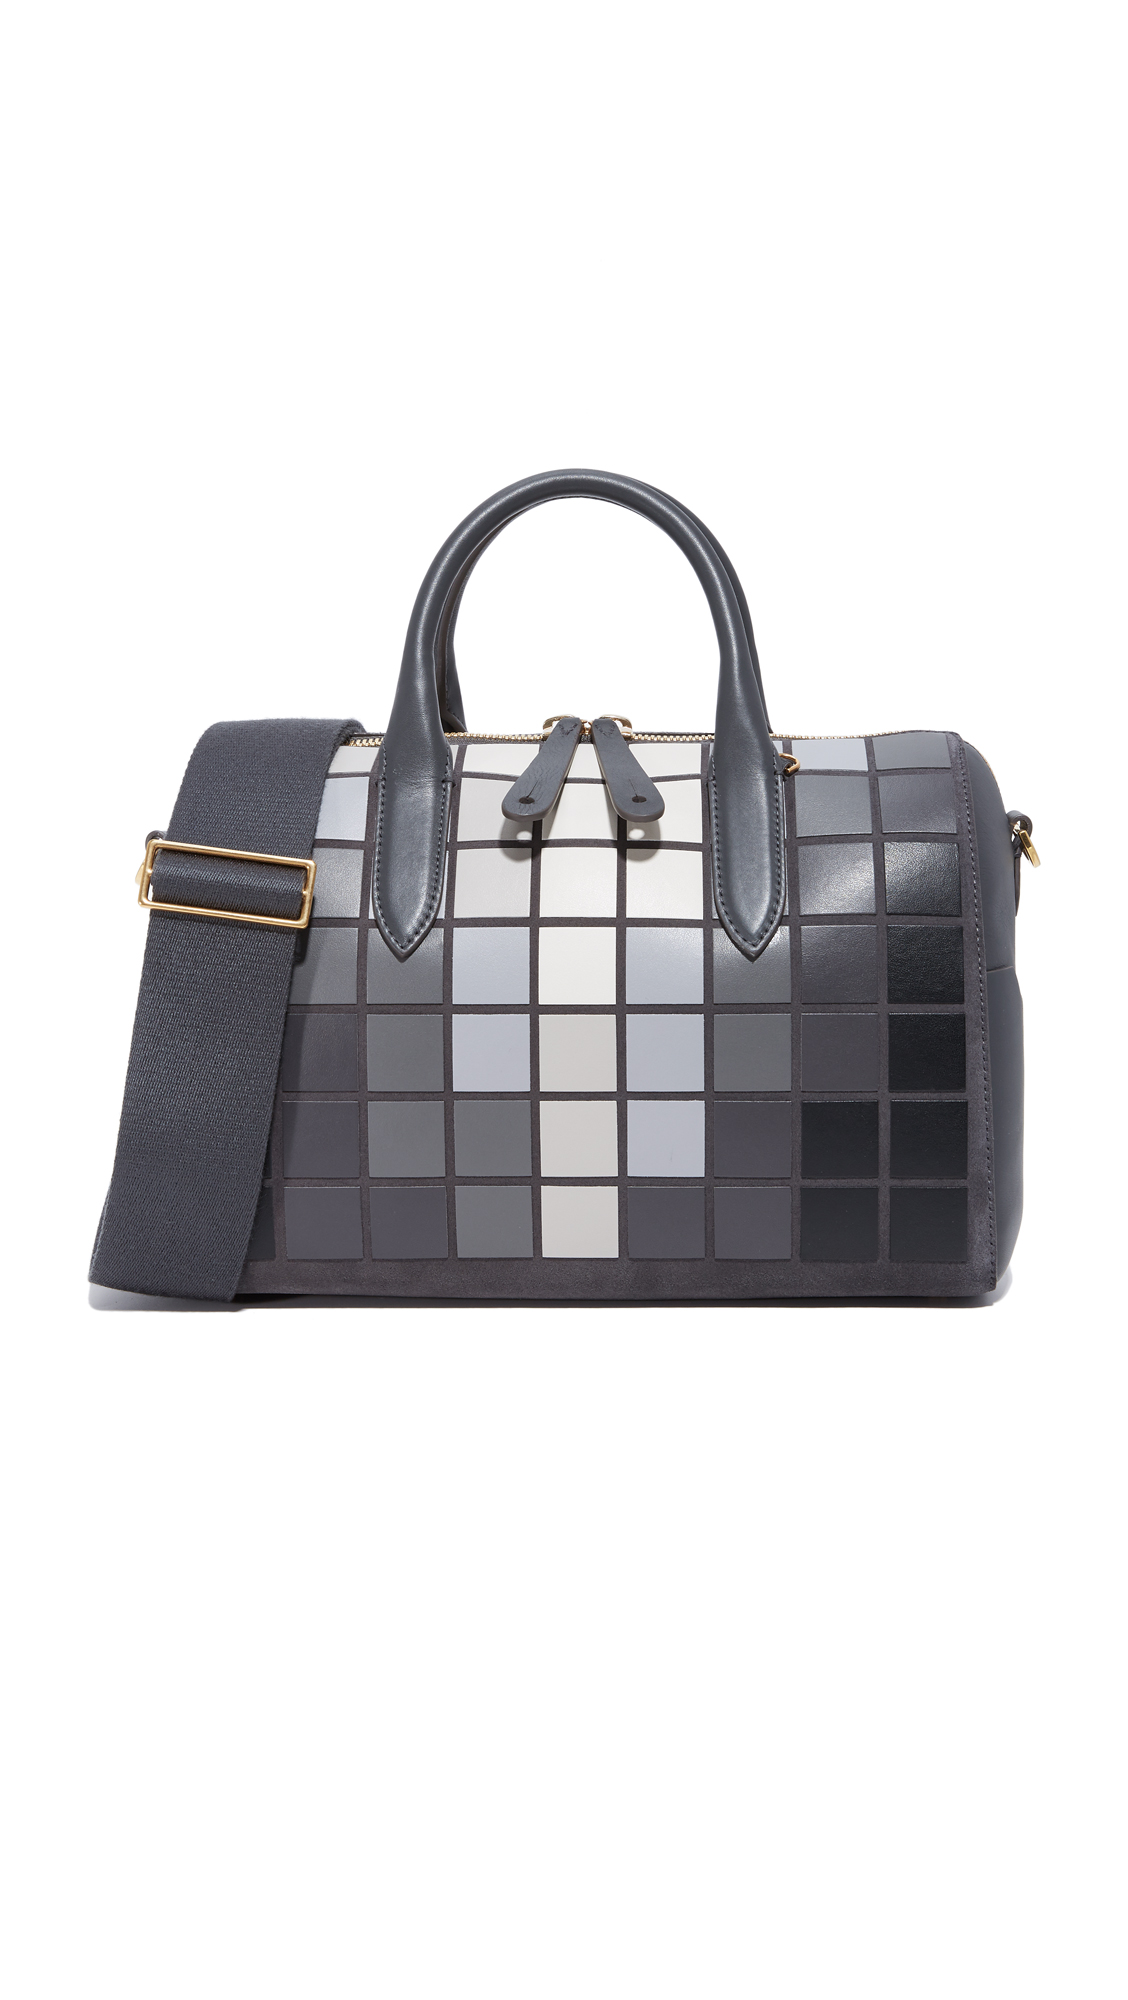 Anya Hindmarch Vere Barrel Handbag - Charcoal